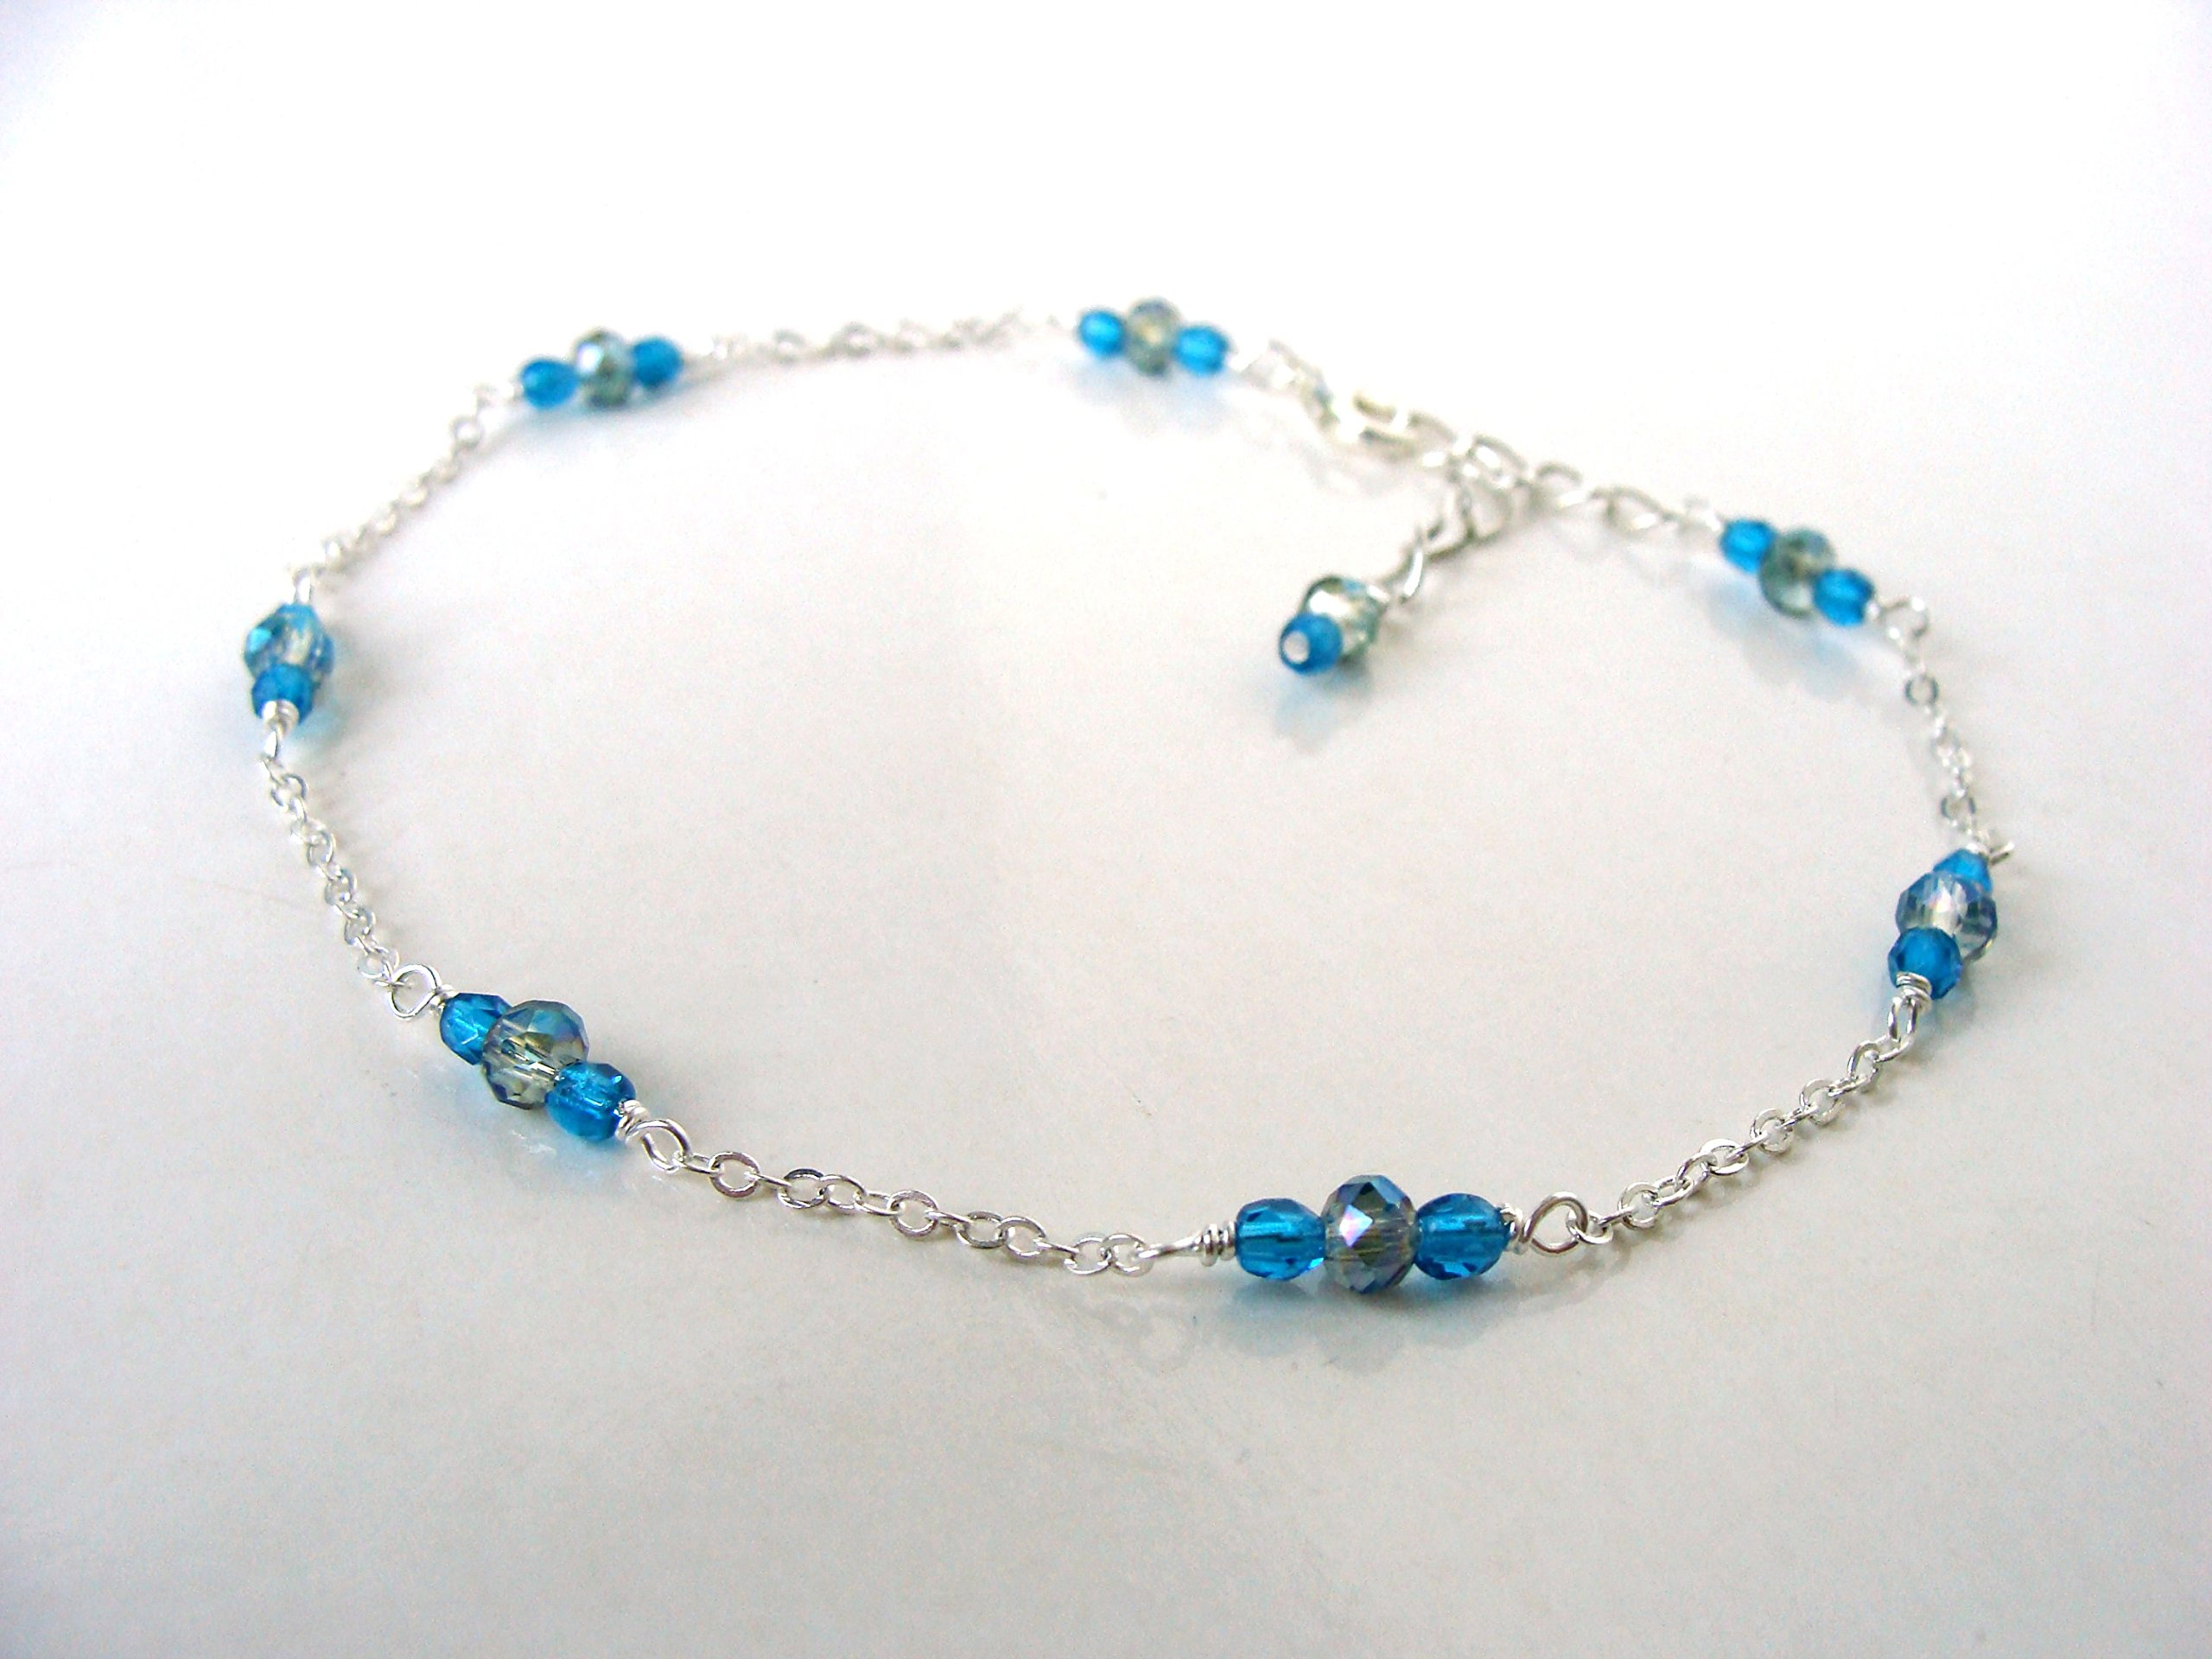 ngacraft Aqua blue-green glass bead anklet, dainty summer mermaid ocean colors. silver metal. adjustable, handmade, Let Loose Jewelry, under 15